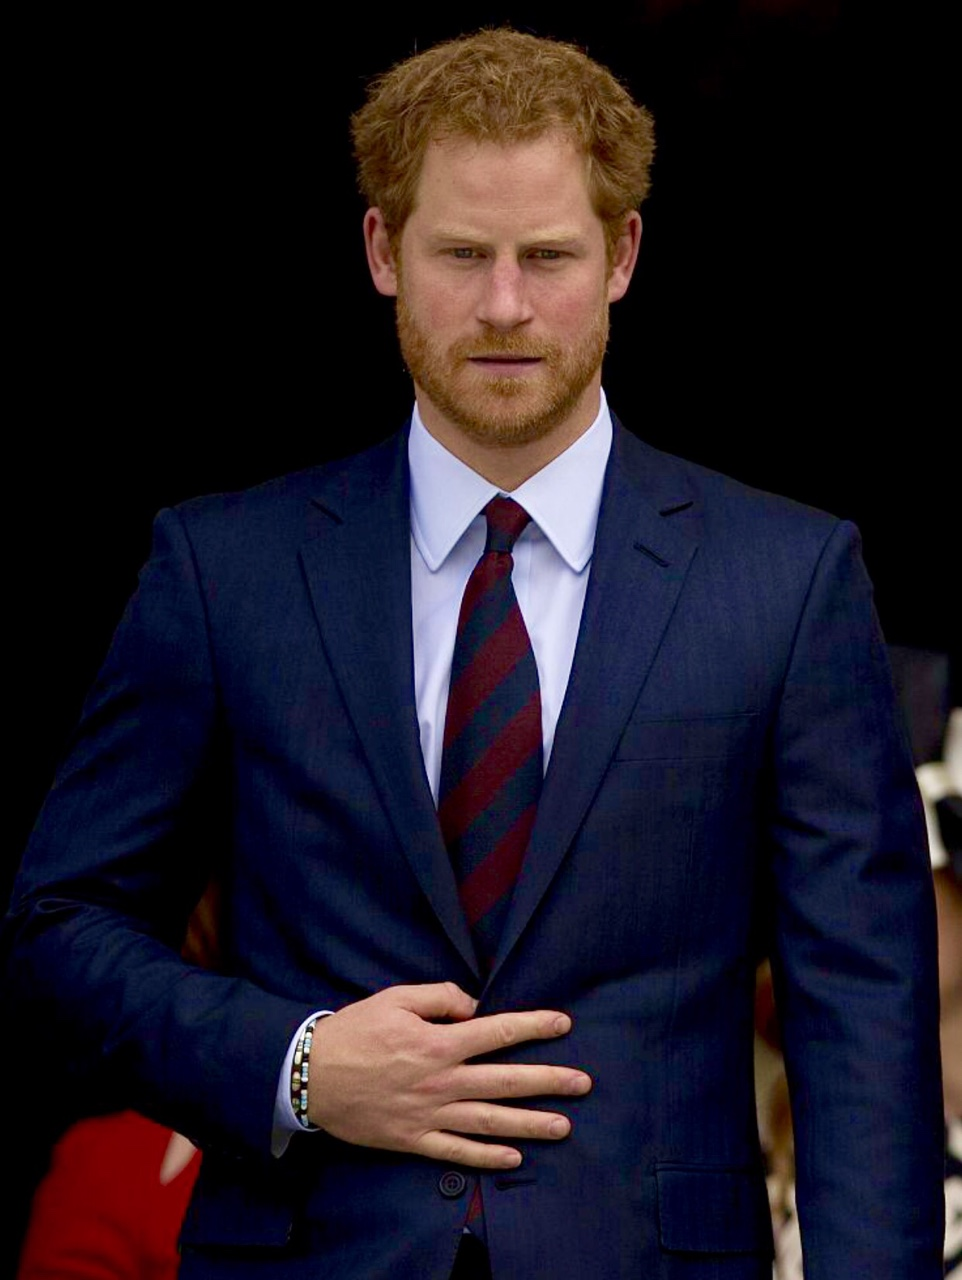 Prince Harry Photo C GETTY IMAGES 0113